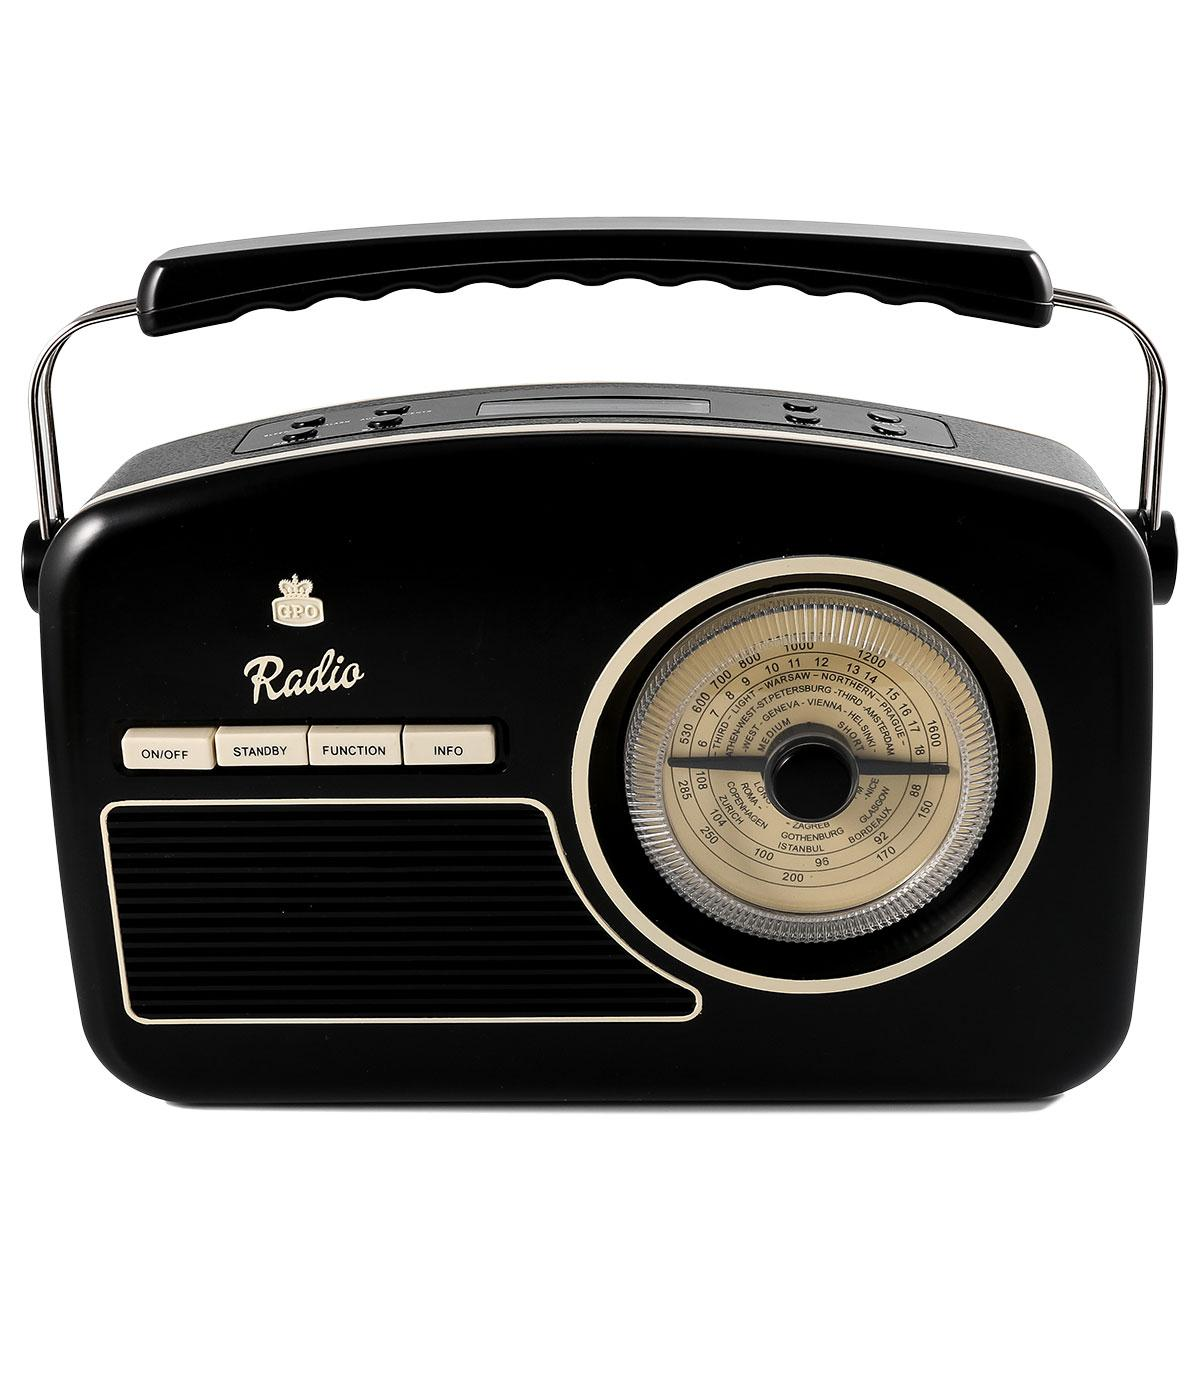 gpo retro vintage 50s style rydell dab radio in black. Black Bedroom Furniture Sets. Home Design Ideas